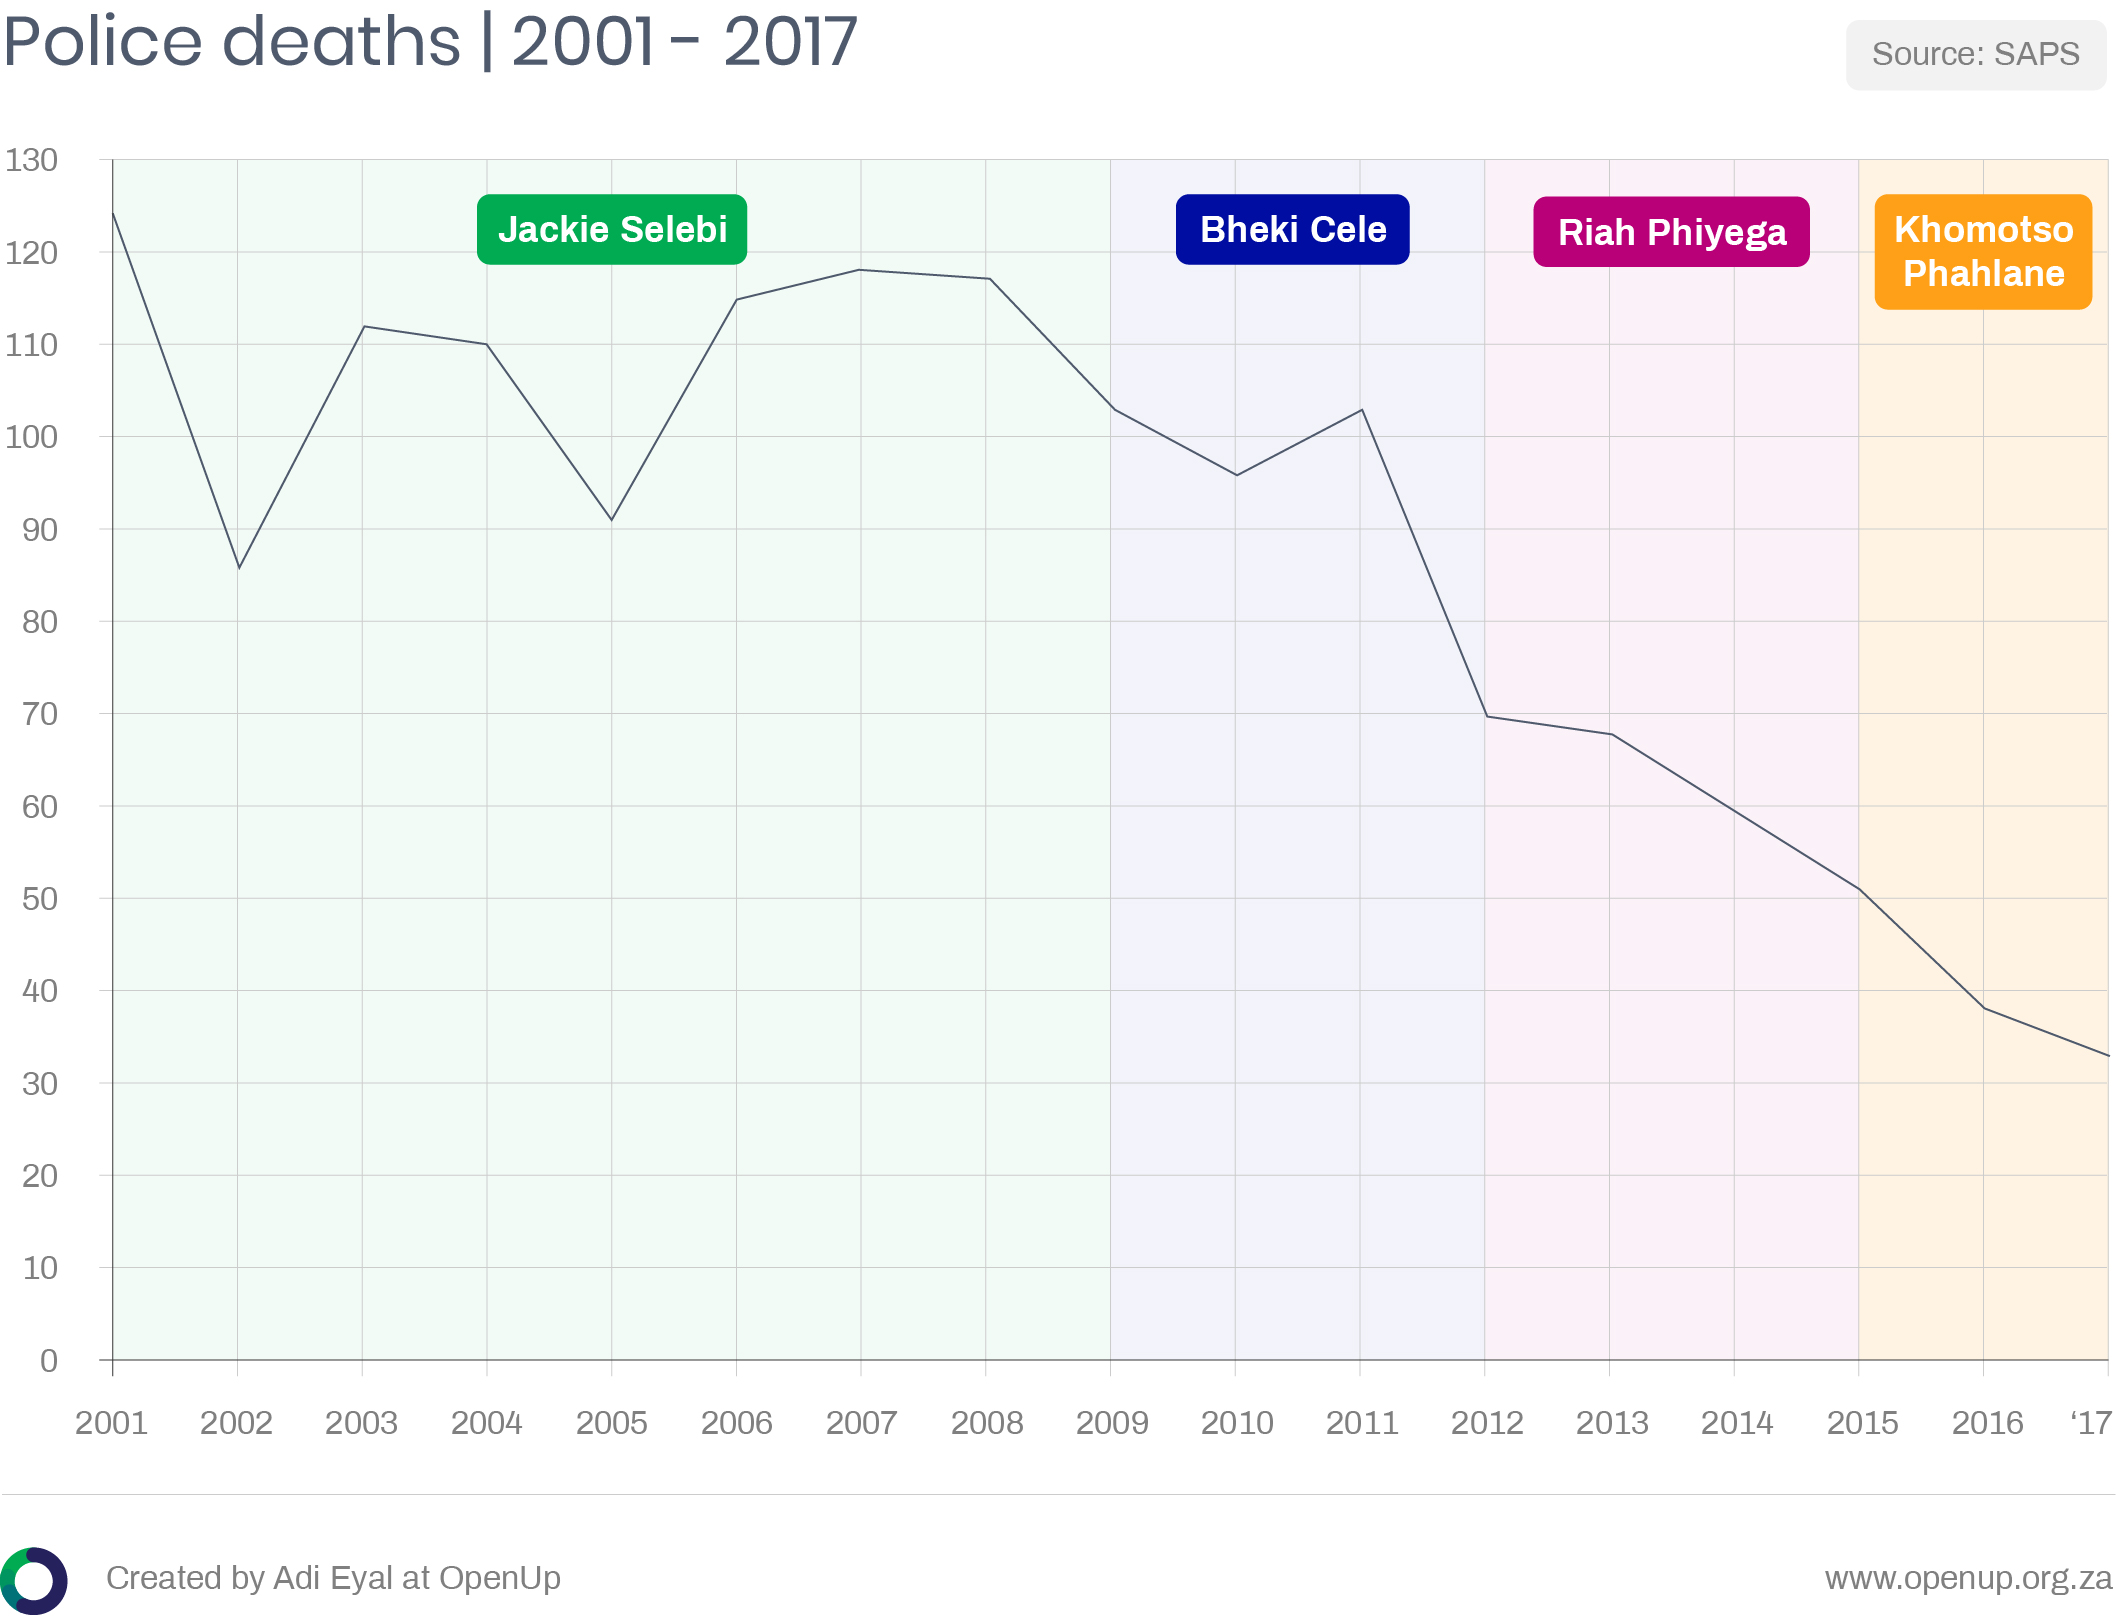 Chart showing a decline in police deaths from 2001 - 2017 in South Africa